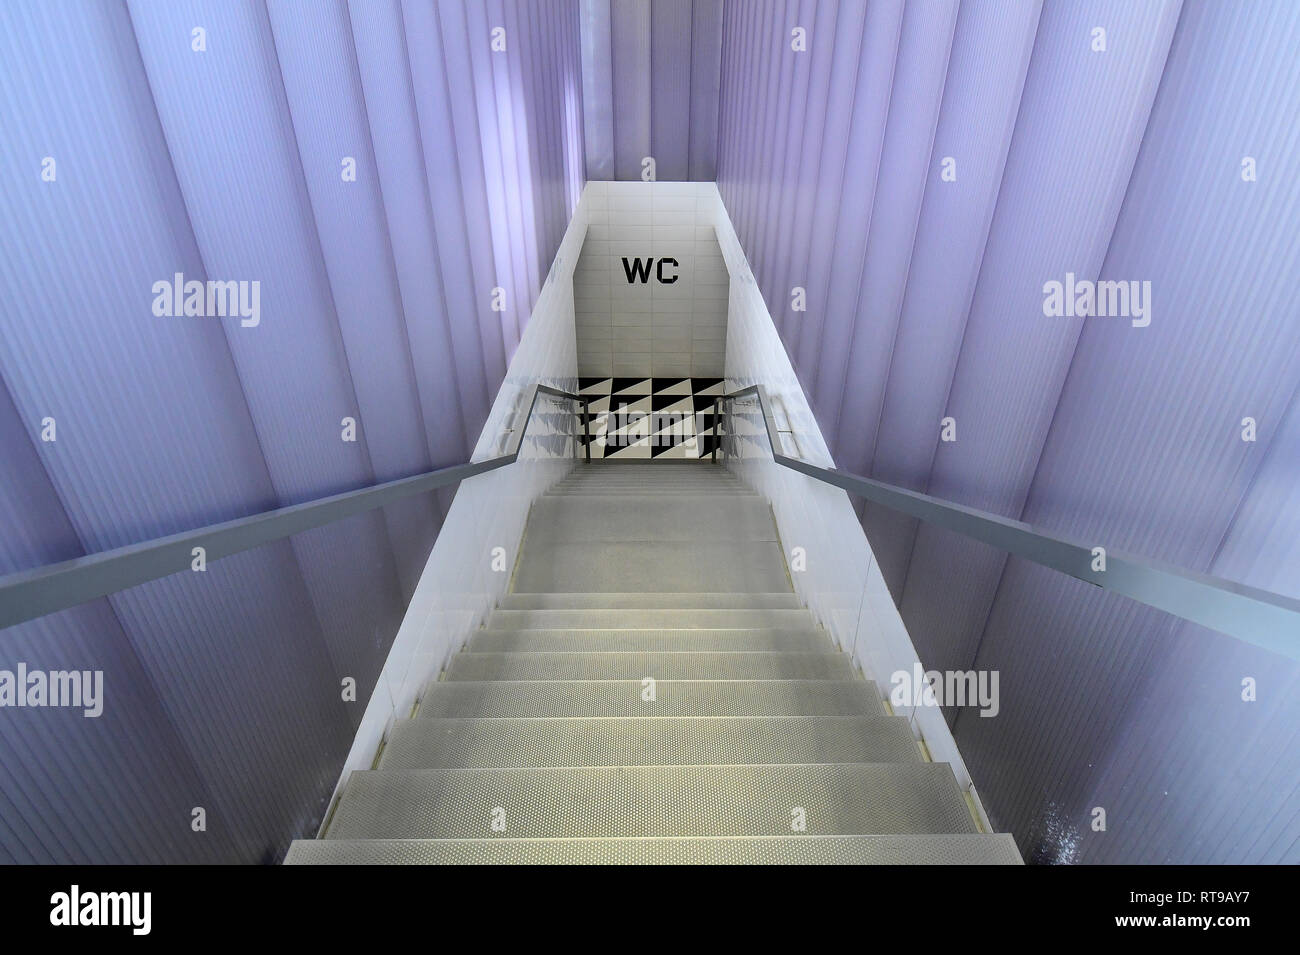 The staircase leading to the bathroom of Bar Luce, Wes Anderson-inspired bar and cafe in the Fondazione Prada district of Milan, Italy Stock Photo